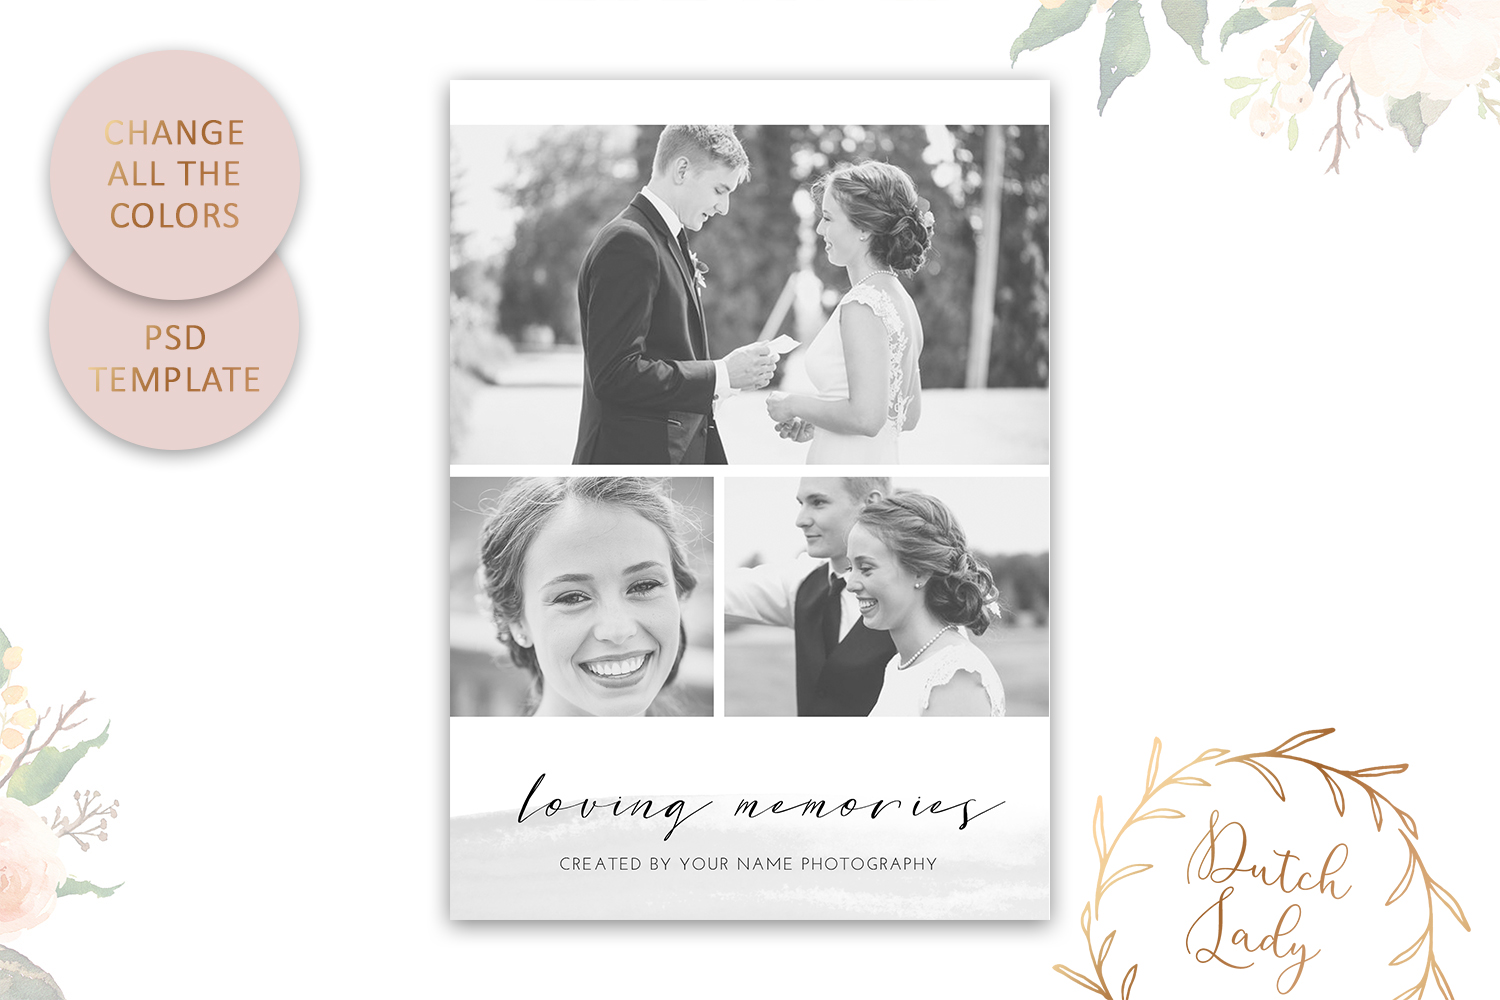 PSD Wedding Photo Session Card - Adobe Photoshop Template #9 - customizable card template vertical 1 -